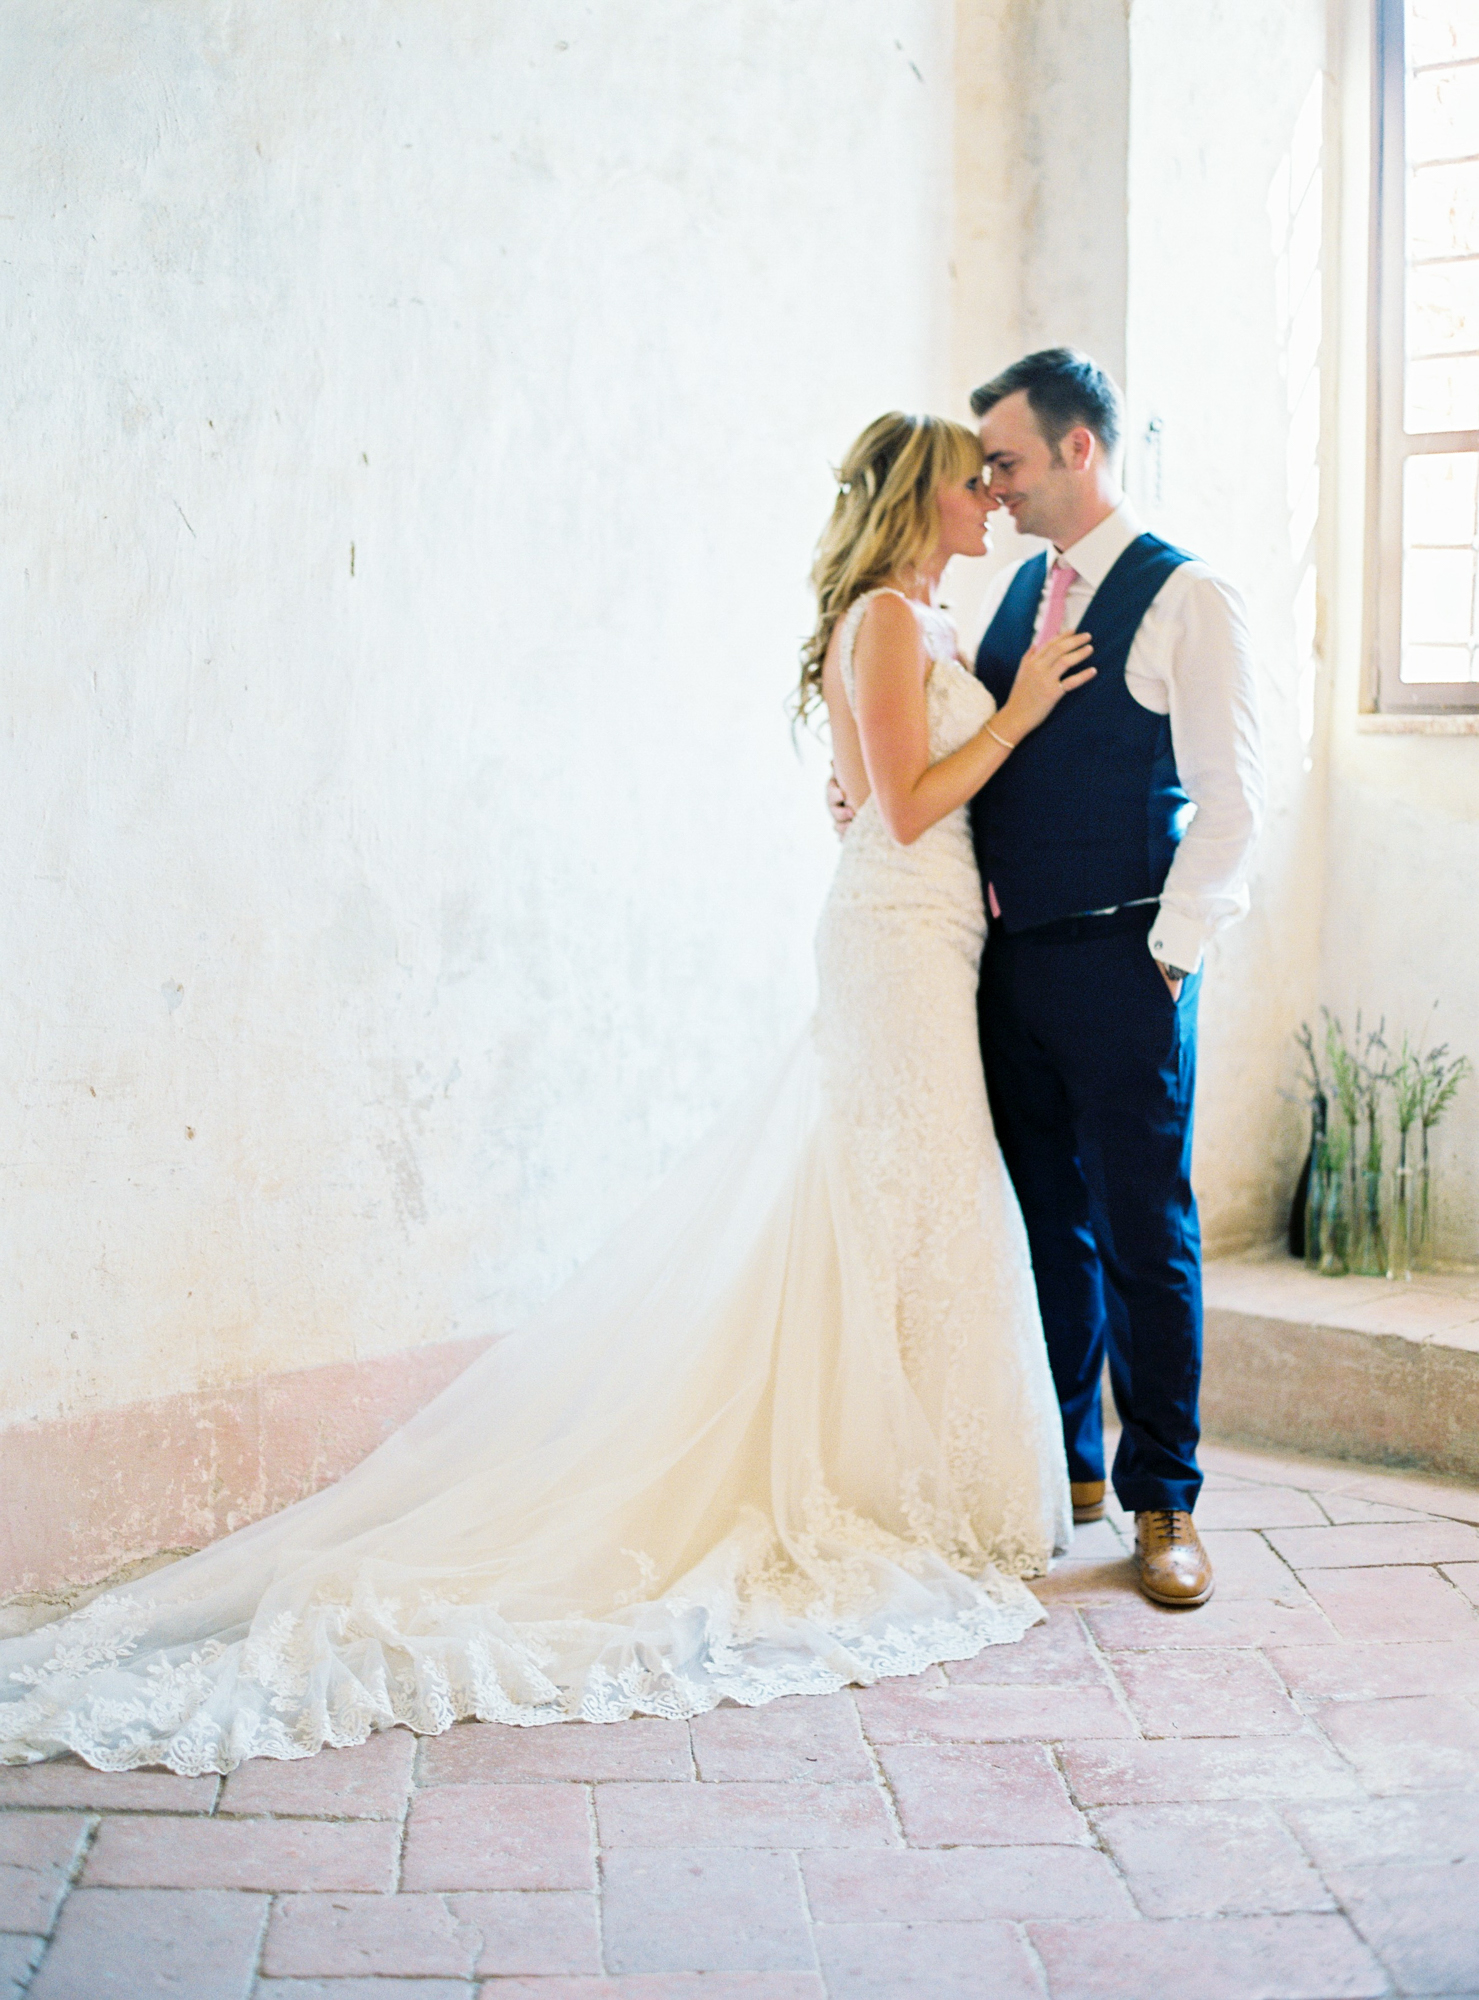 Destination wedding photographer _ fotografo de casamento _ elopement _ wedding photographer _ europe wedding _ love is my favorite color_ elopement in portugal _L&R 2801.jpg